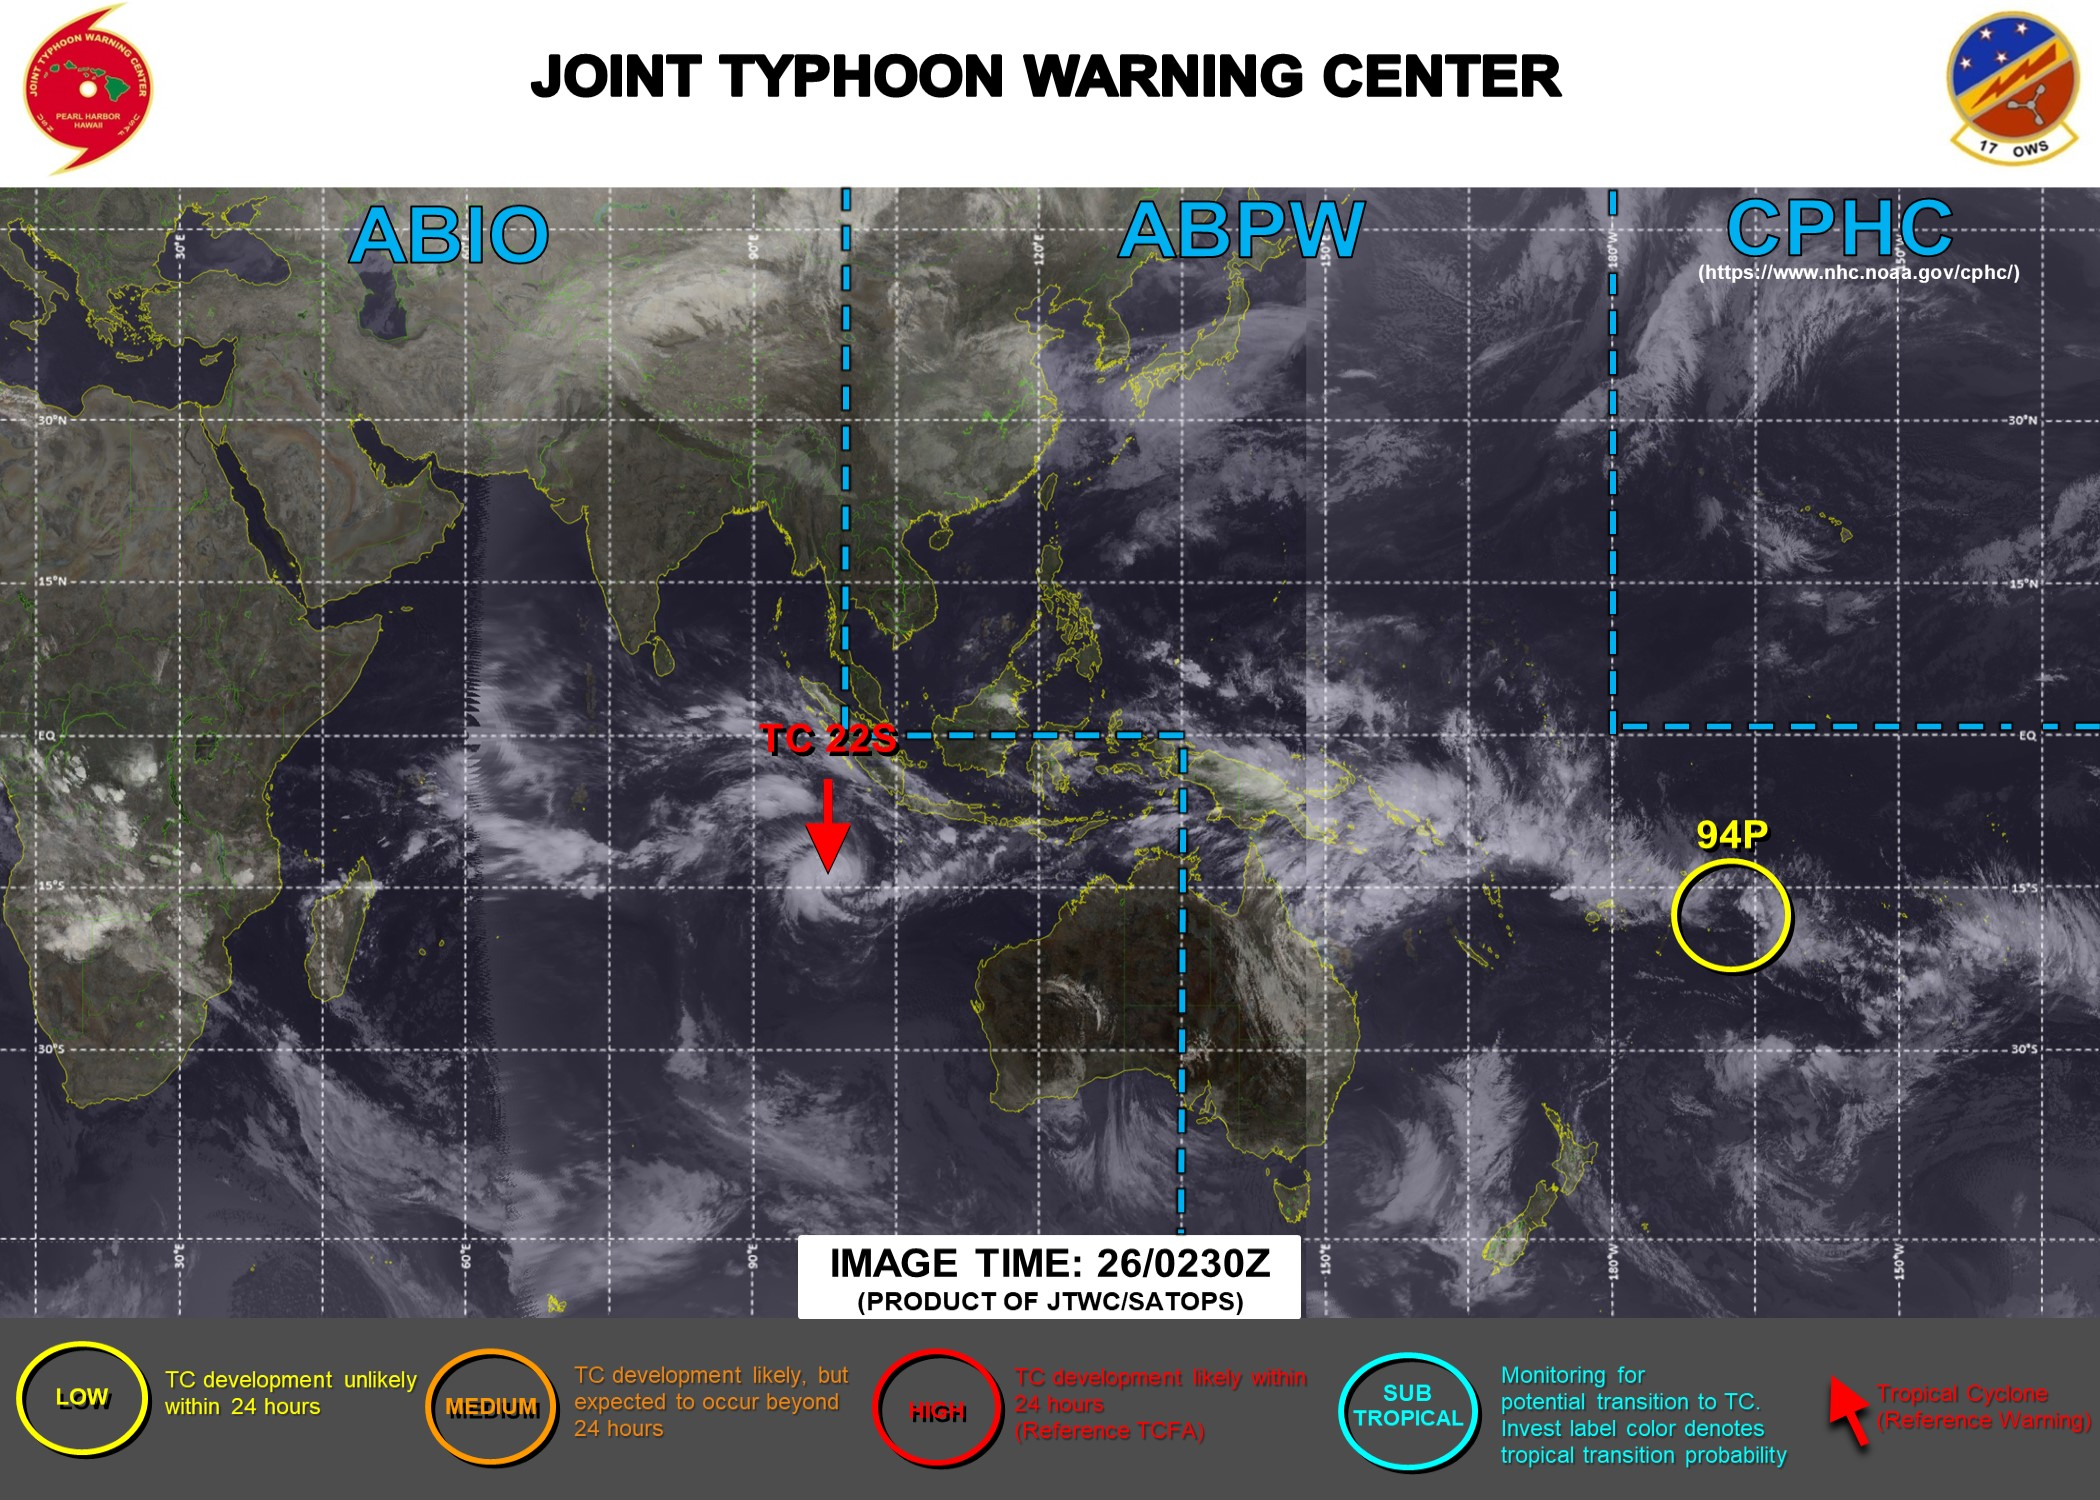 26/03UTC. INVEST 98S IS UP-GRADED TO TC 22S. JTWC IS ISSUING 12HOURLY WARNINGS ON TC 22S AND 3HOURLY SATELLITE BULLETINS. INVEST 94P REMAINS LOW.